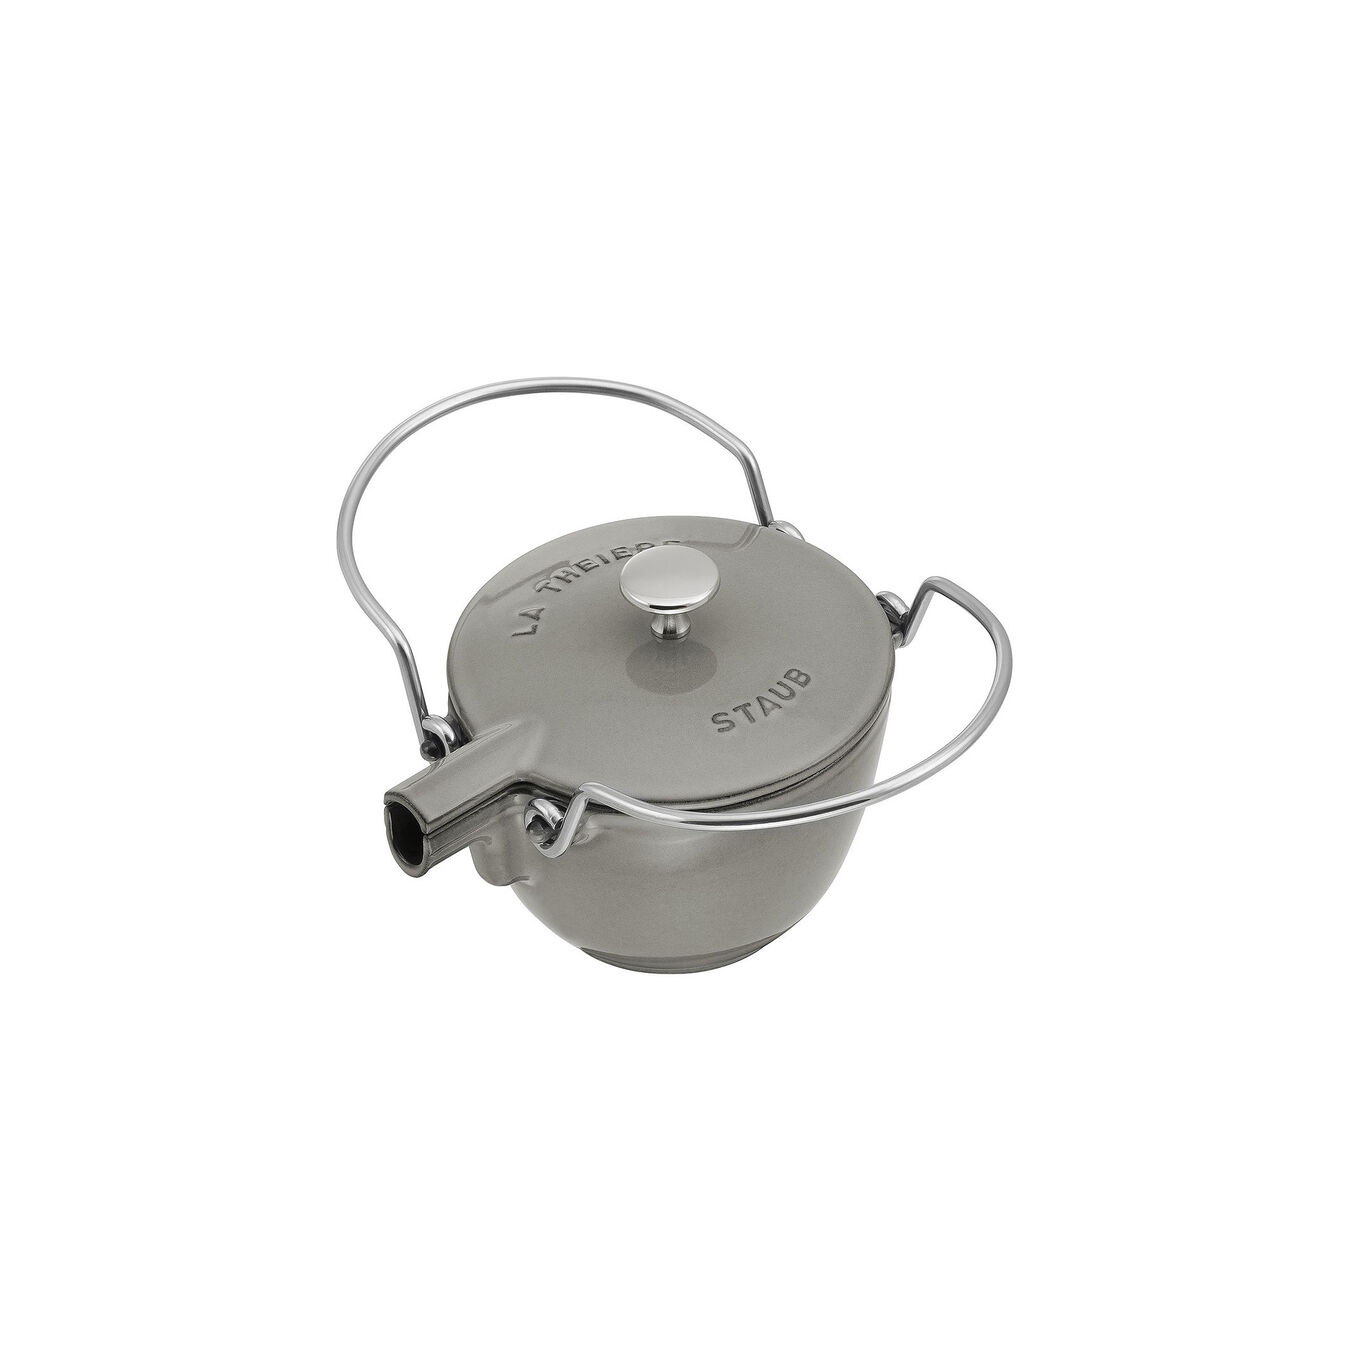 1-qt Round Tea Kettle - Graphite Grey,,large 2